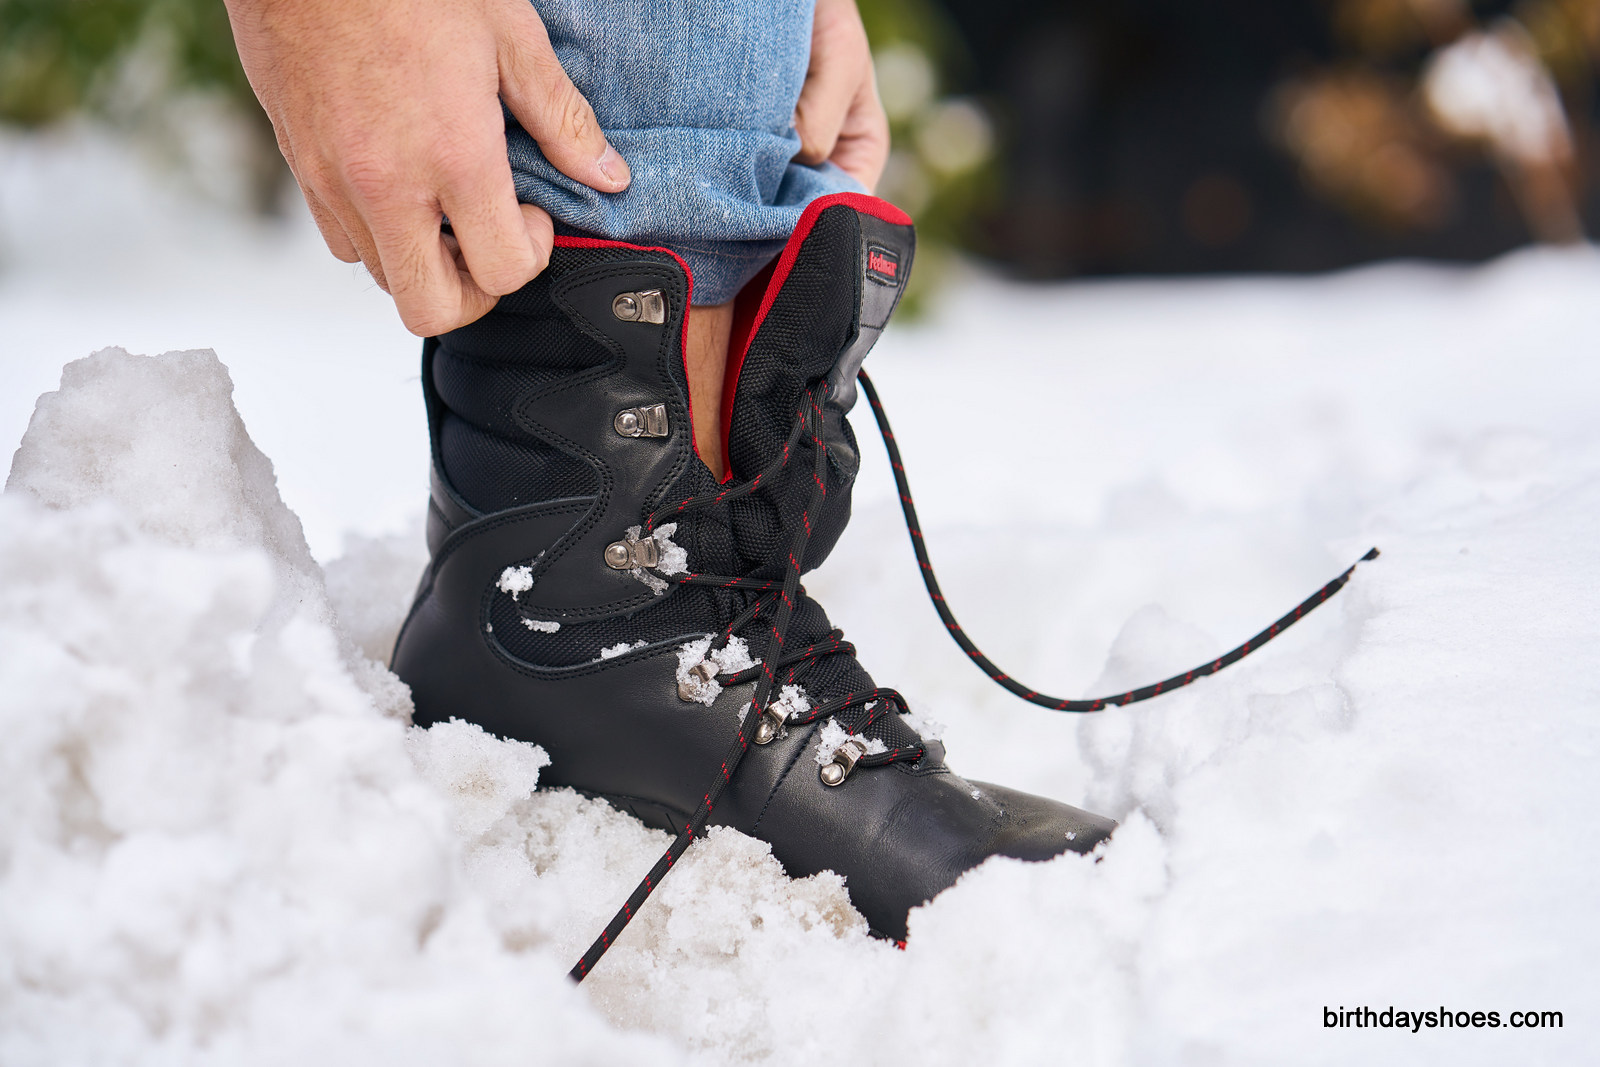 The high-slung tongue starts about 2/3 of the way up the boot; higher than a standard boot for added protection from puddles and snowbanks